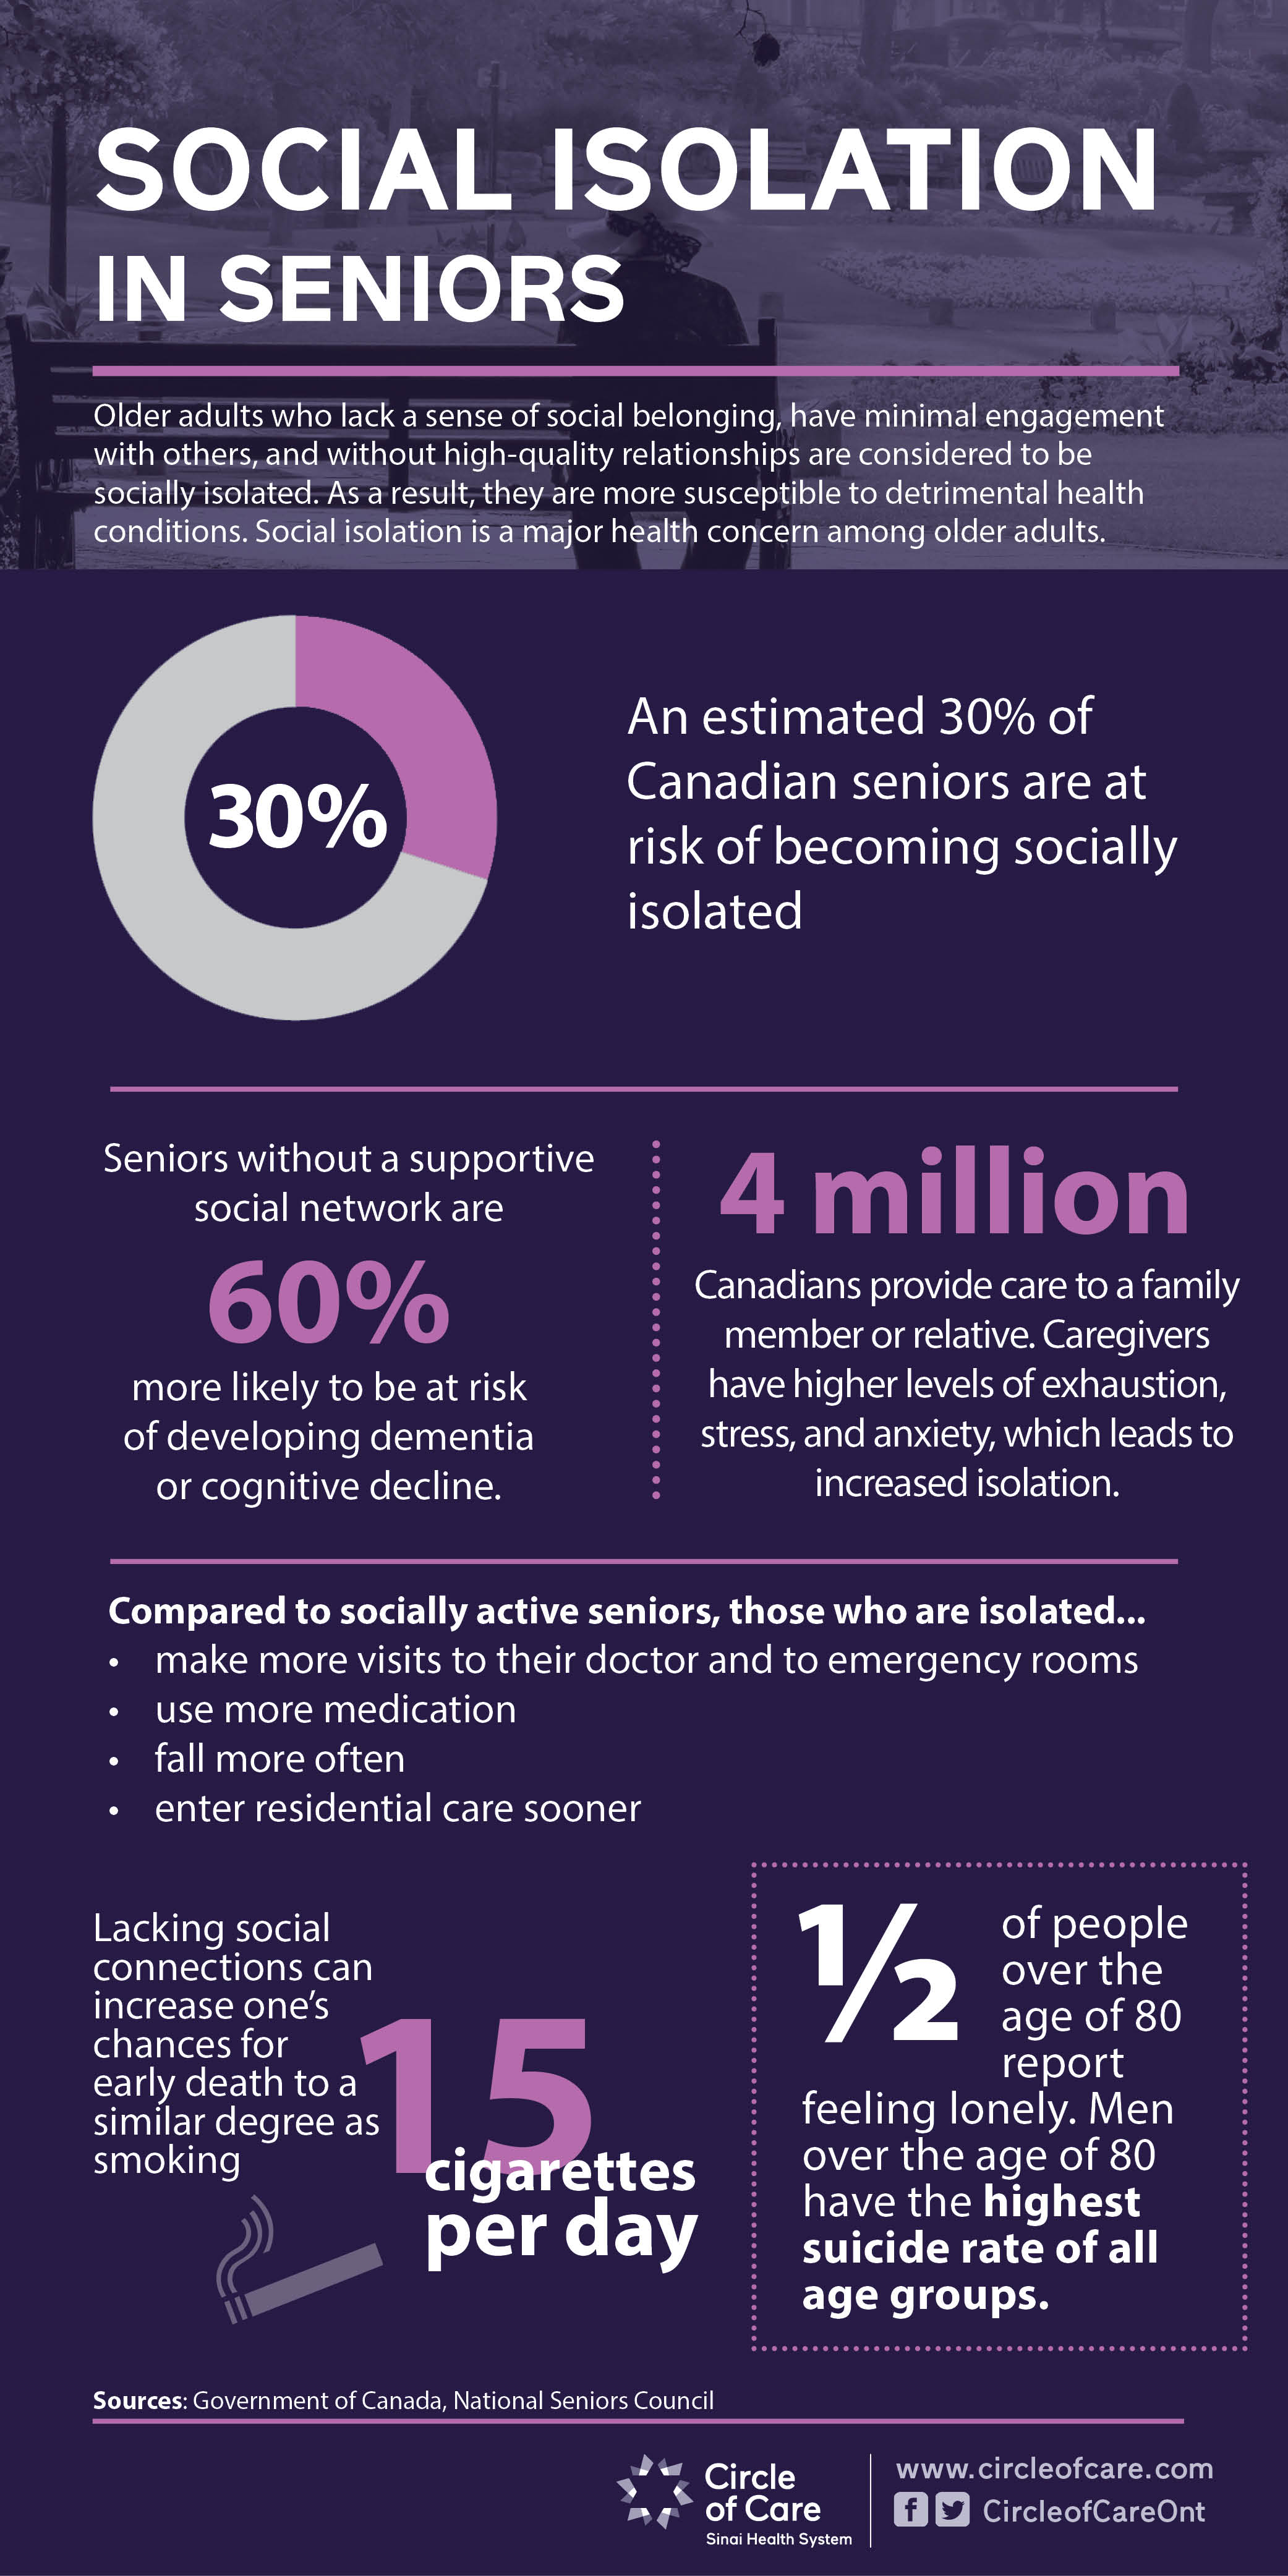 Infographic about social isolation